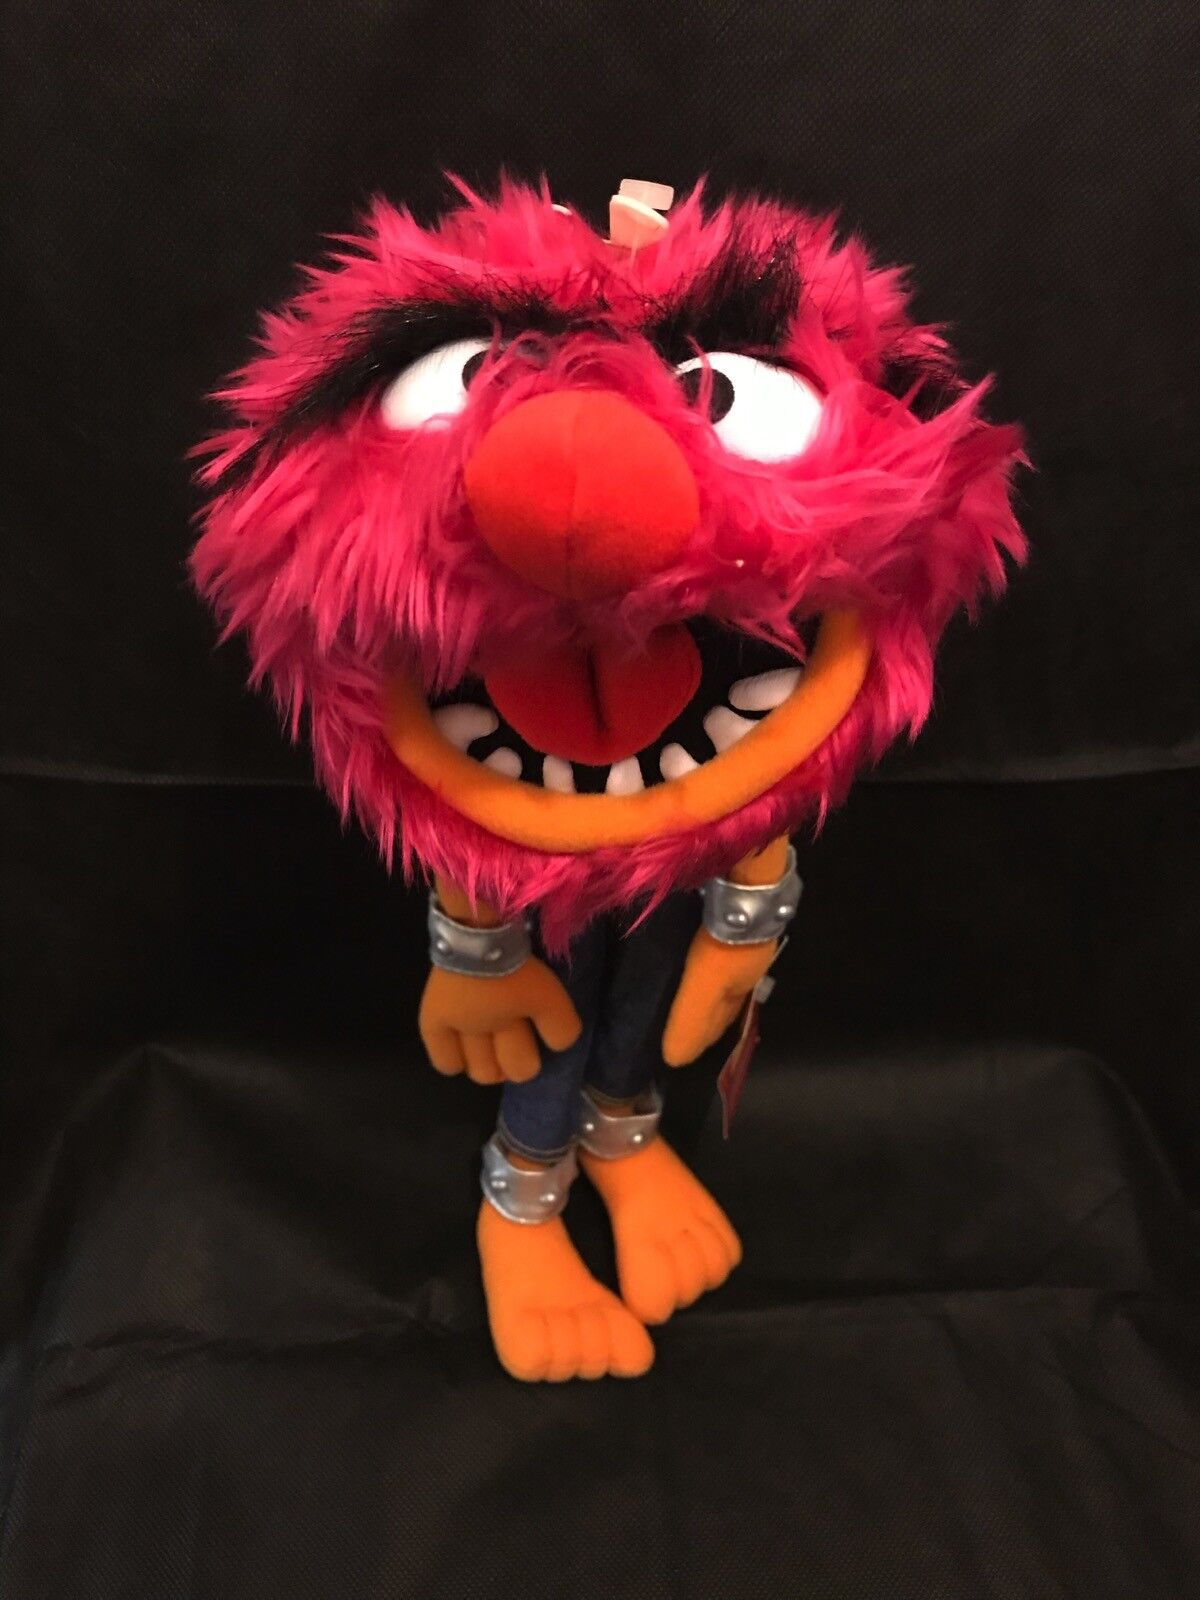 SABABA TOYS THE MUPPET SHOW ANIMAL MASSIVE 16 INCH PLUSH TOY w BENDY LEGS